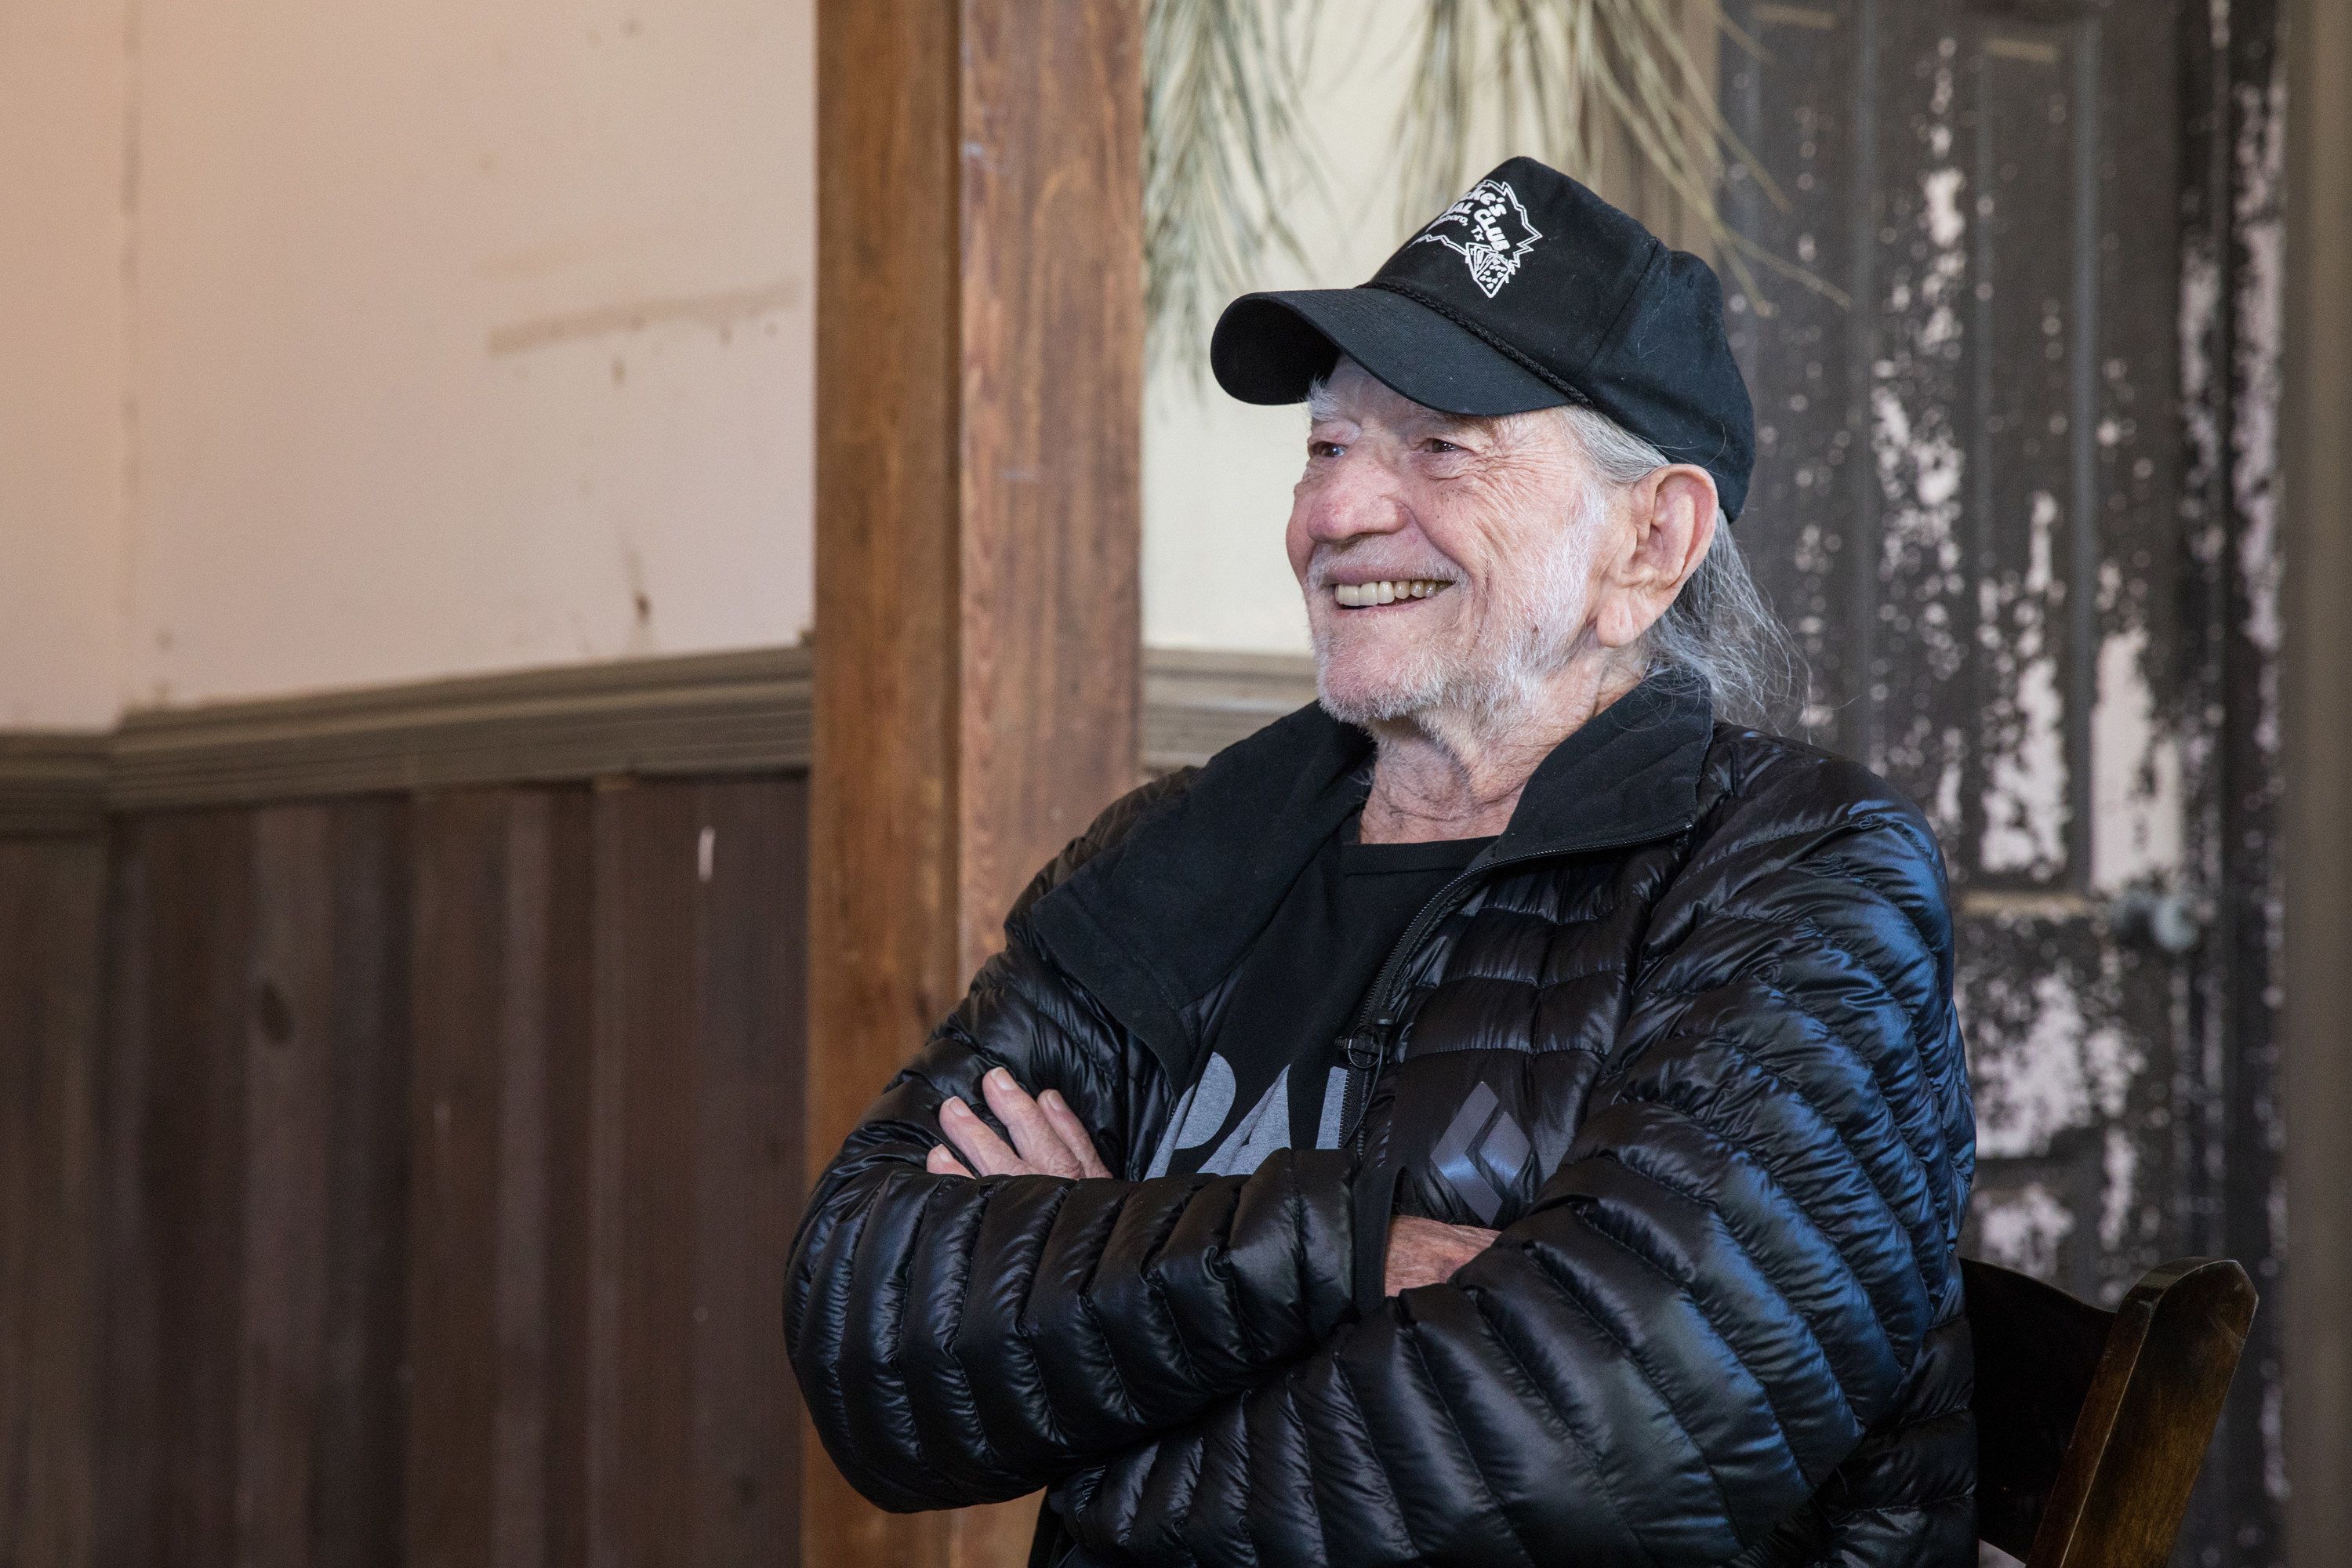 Willie Nelson smiling